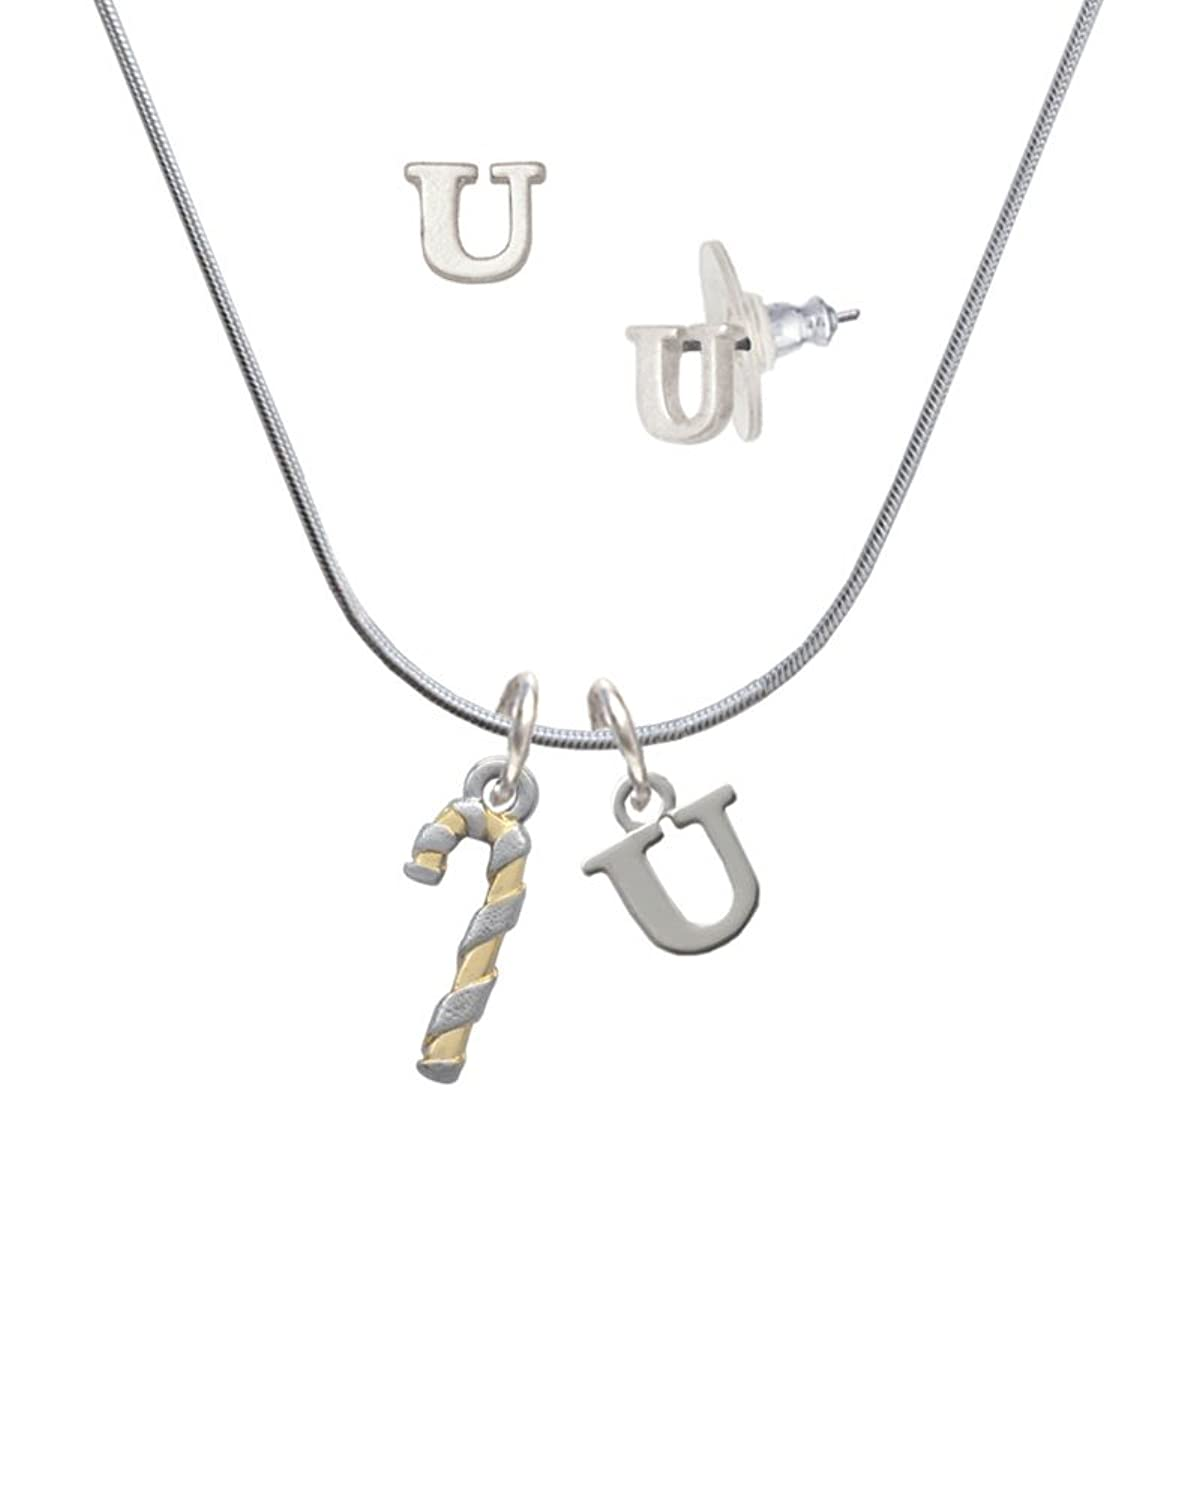 3-D and Gold Tone Candy Cane - U Initial Charm Necklace and Stud Earrings Jewelry Set